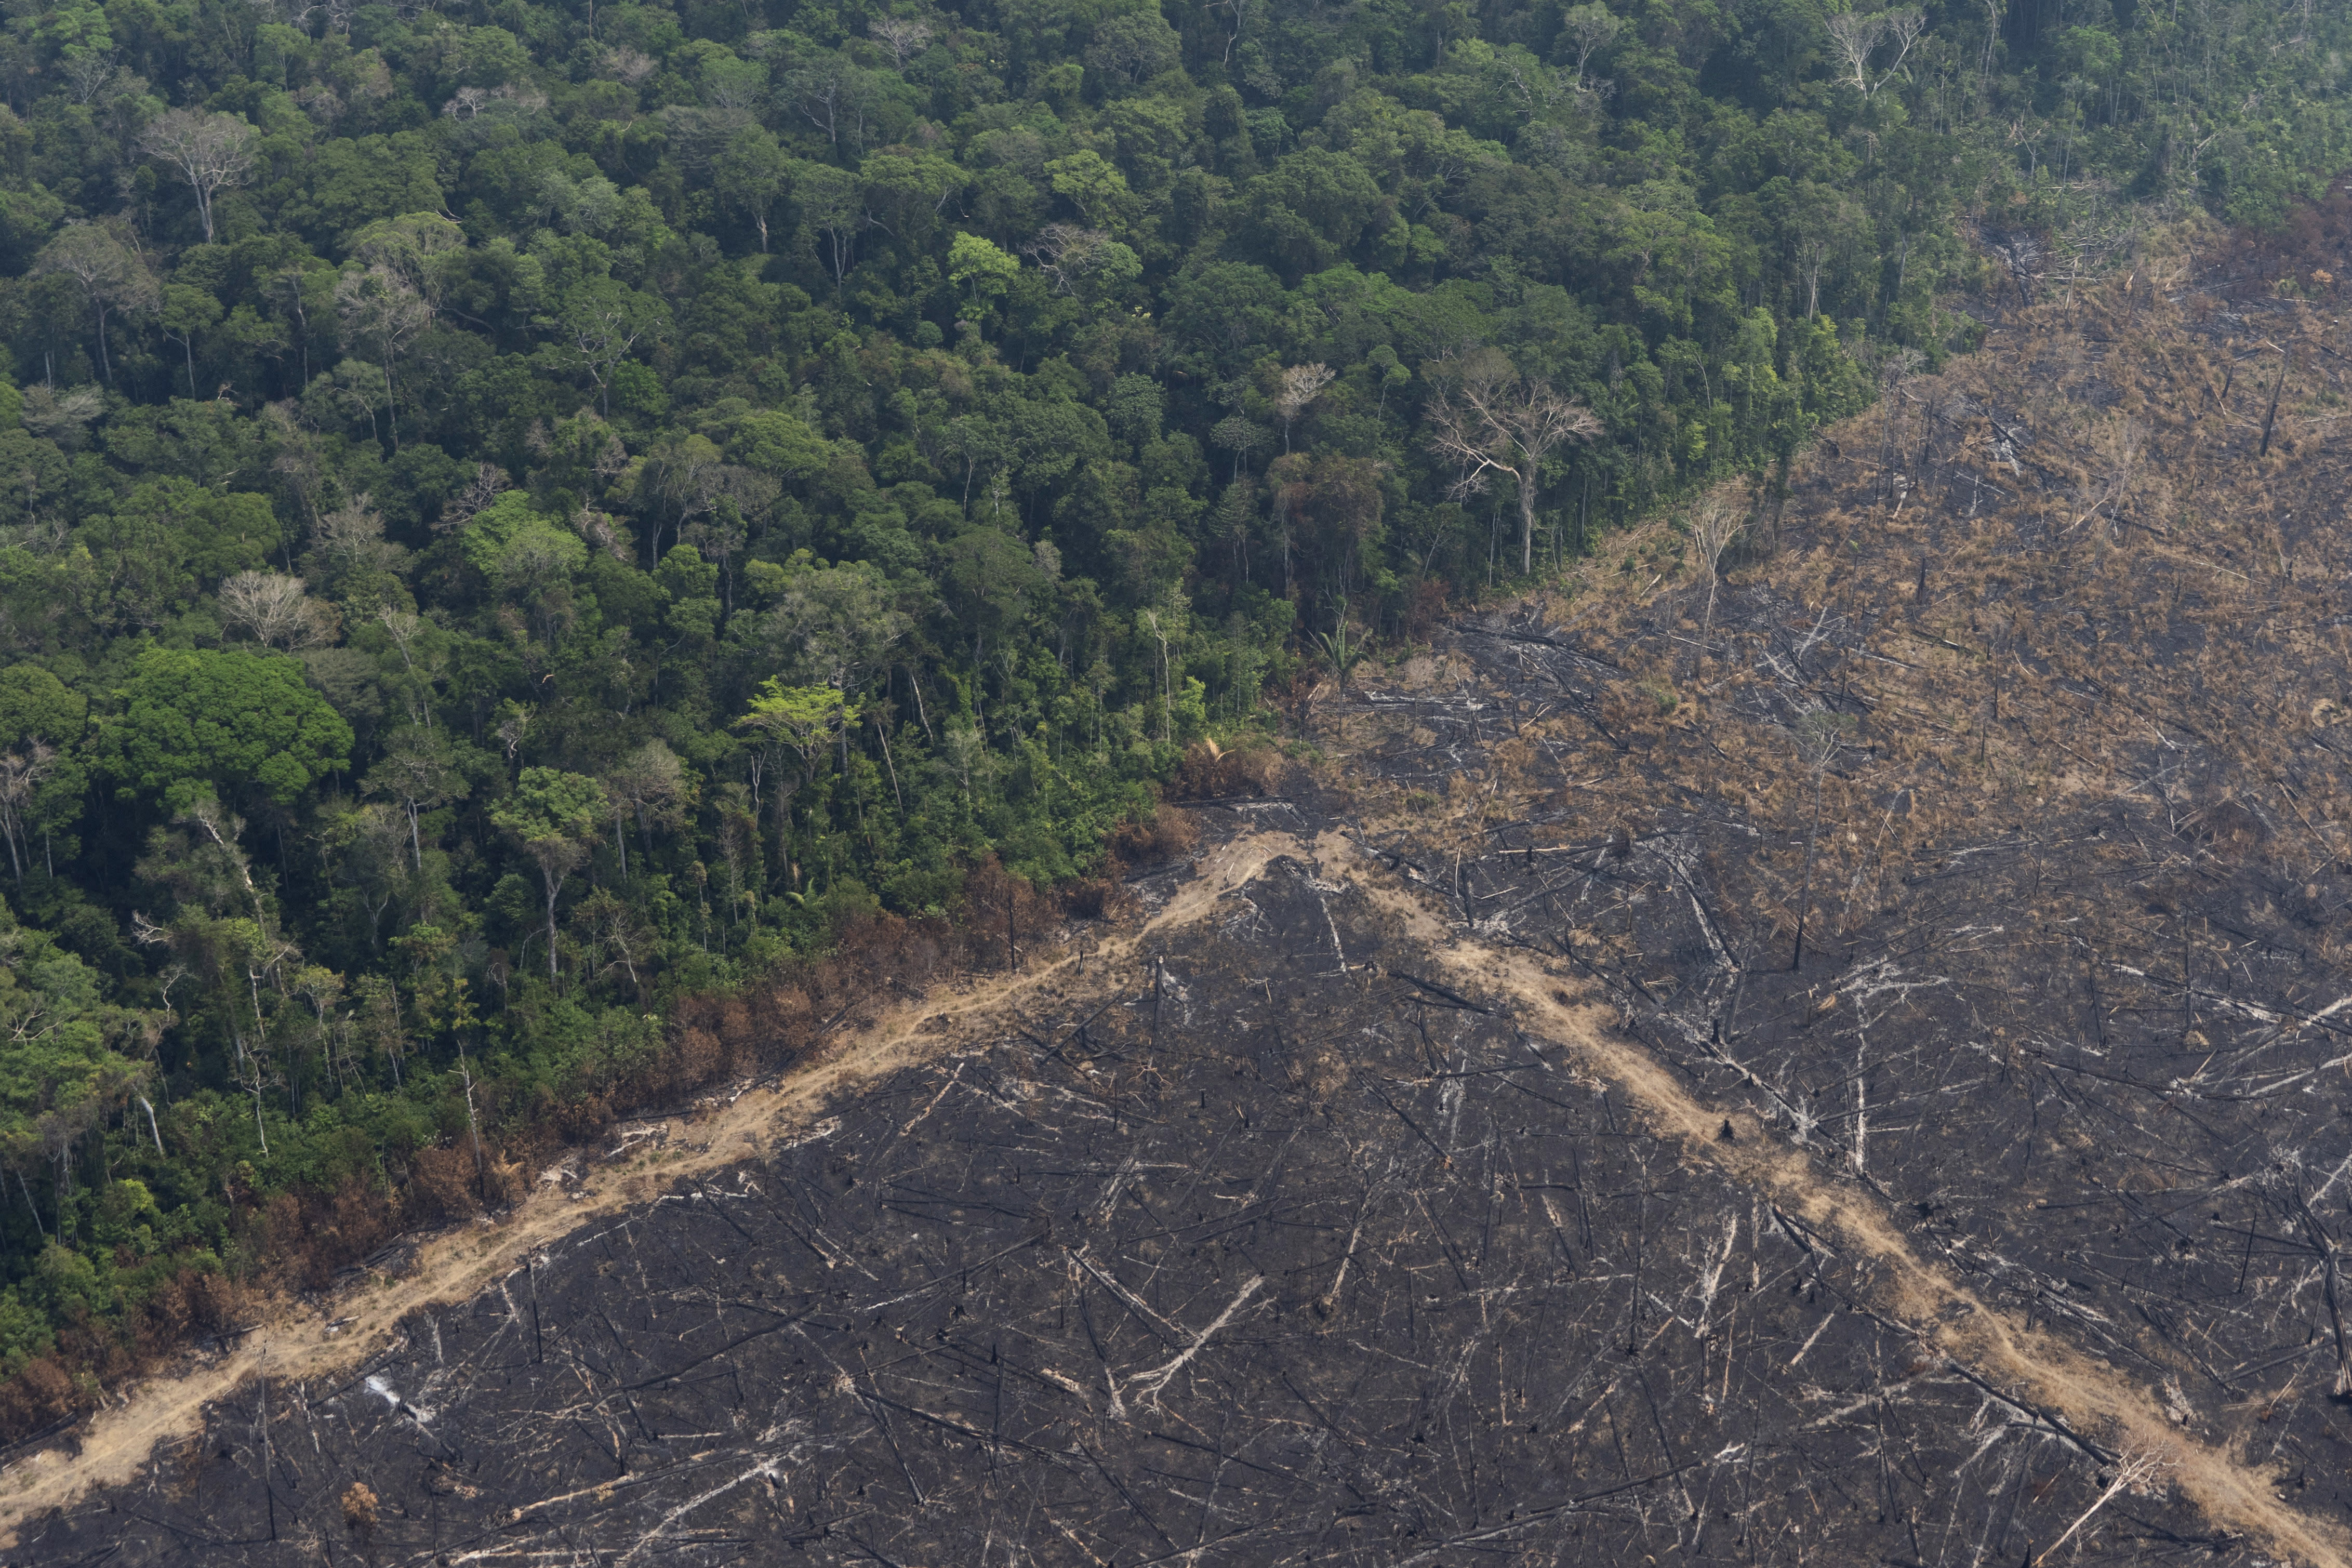 Virgin jungle stands next to an area that was burnt recently near Porto Velho, Brazil, Friday, Aug. 23, 2019. Brazilian state experts have reported a record of nearly 77,000 wildfires across the country so far this year, up 85% over the same period in 2018. Brazil contains about 60% of the Amazon rainforest, whose degradation could have severe consequences for global climate and rainfall. (AP Photo/Victor R. Caivano)